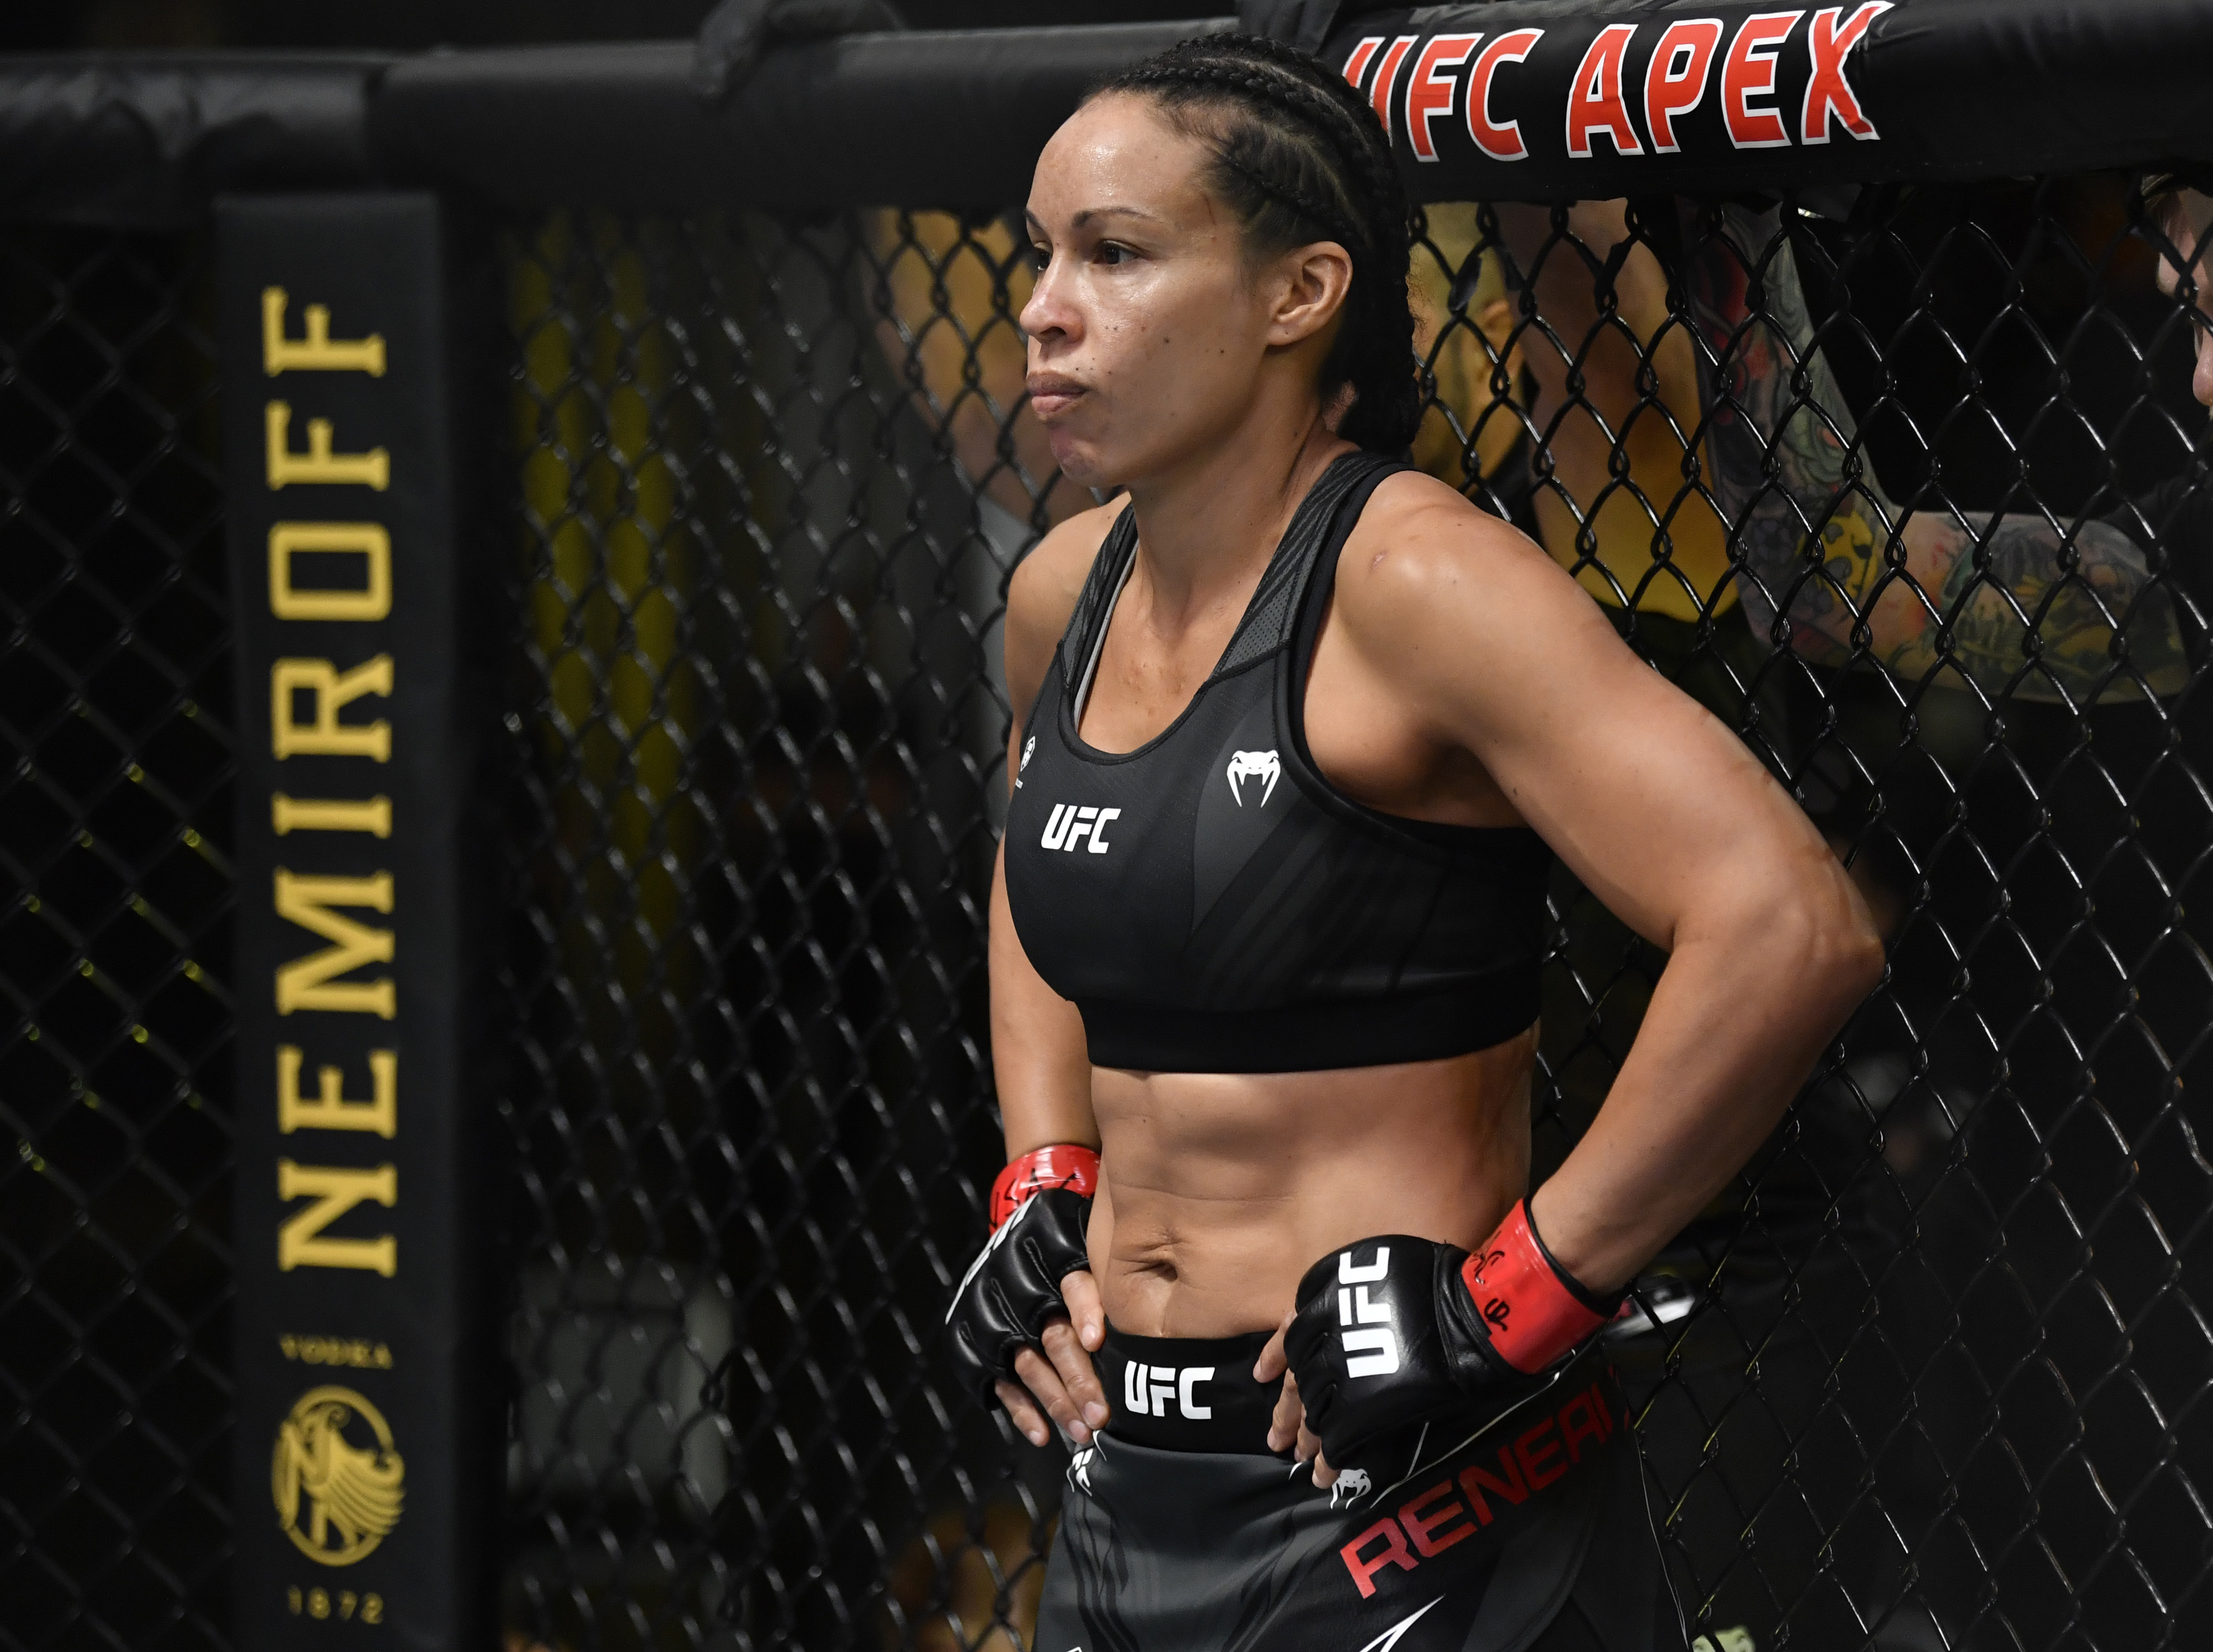 Marion Reneau before her fight against Miesha Tate at UFC Vegas 31.